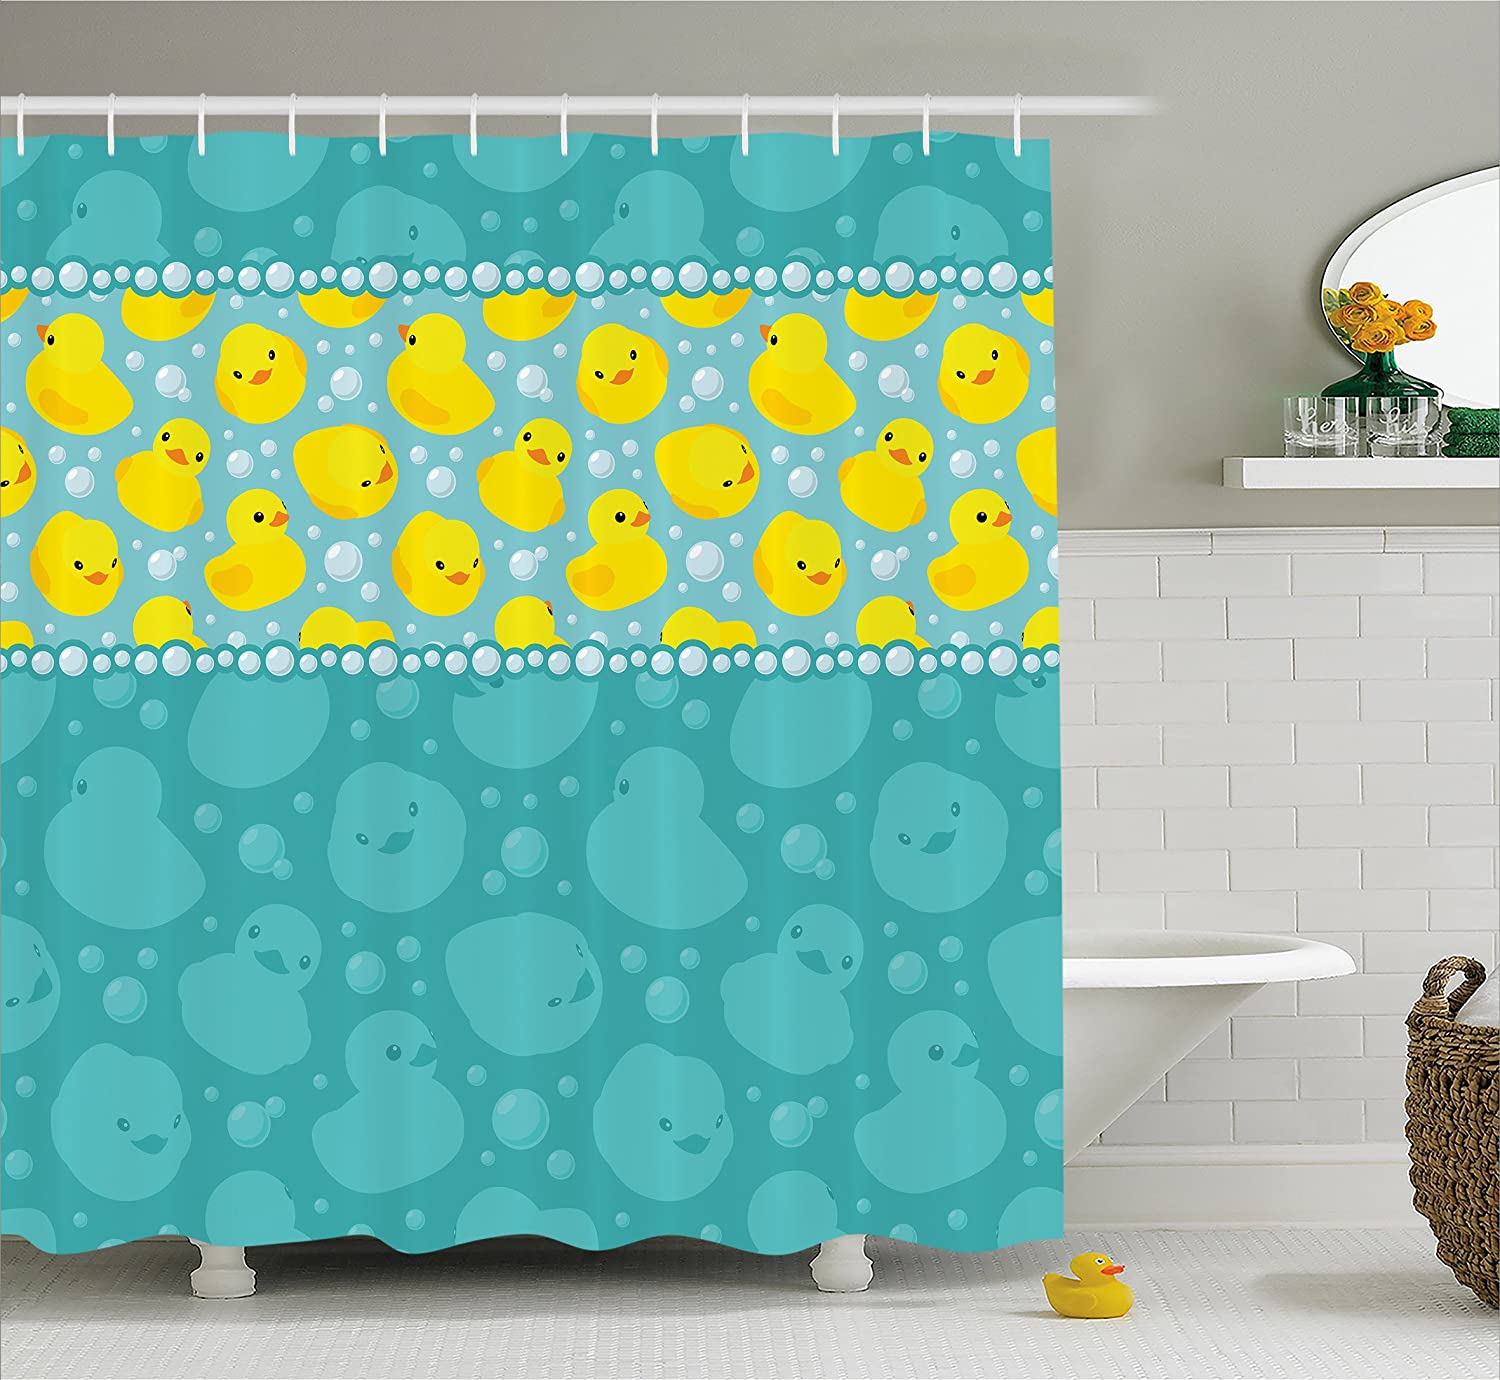 Cream Turquoise Ottoman Mosaic Art Pattern with Oriental Floral Forms Antique Scroll Ceramic Boho Print Cloth Fabric Bathroom Decor Set with Hooks 75 Inches Long Ambesonne Moroccan Shower Curtain